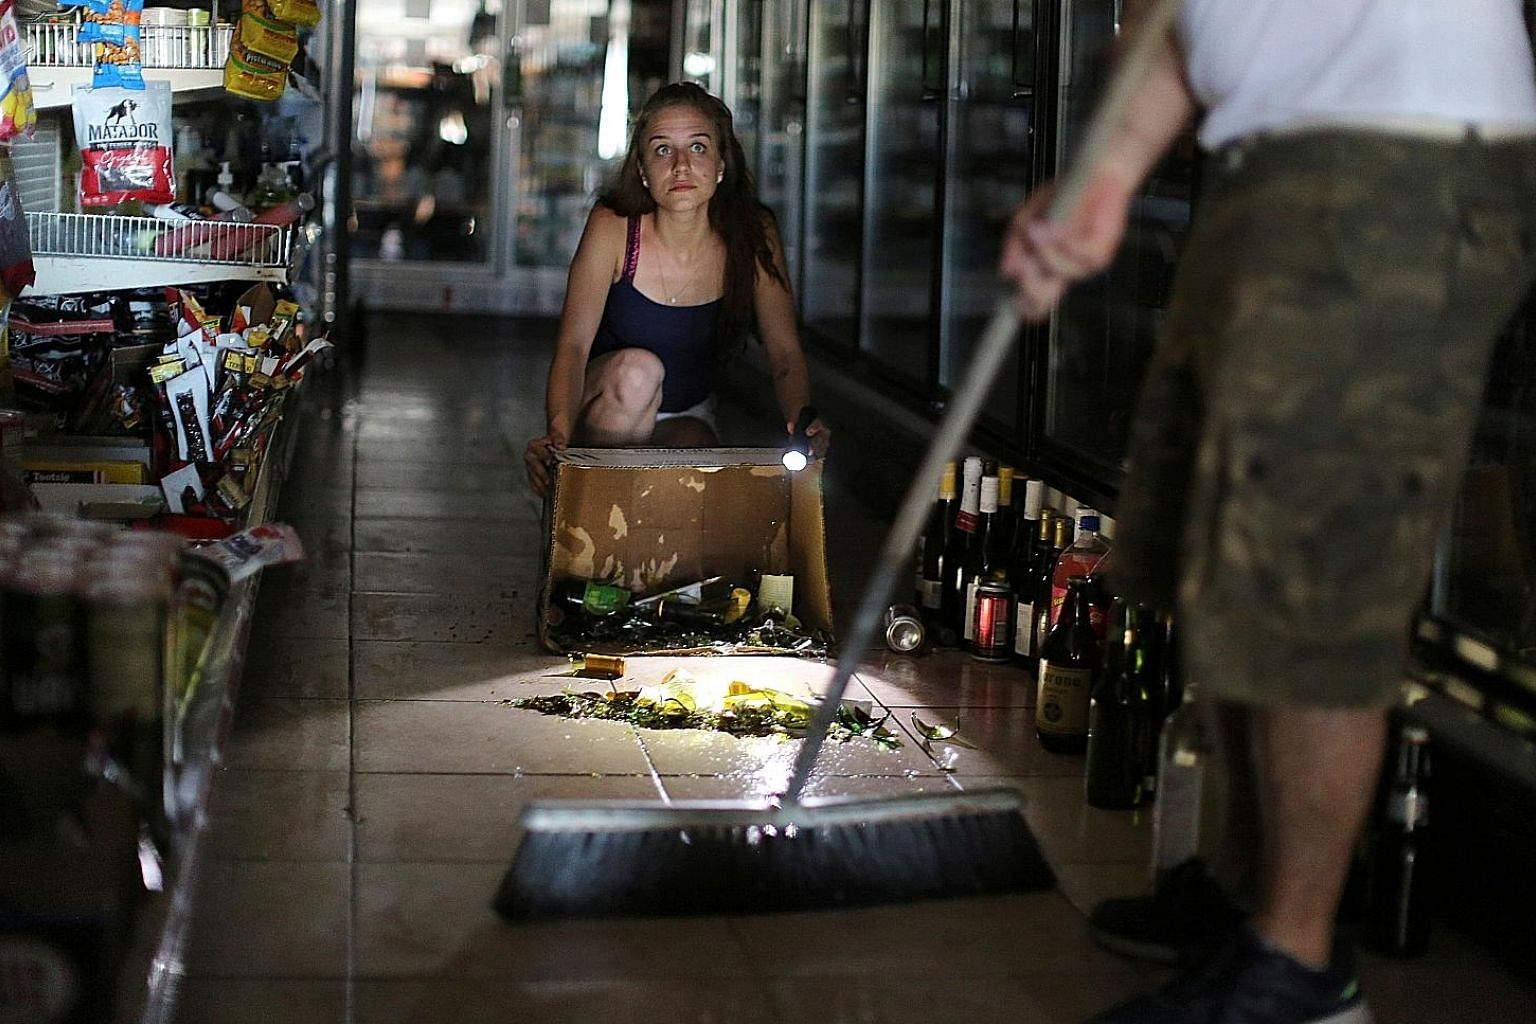 Owners of a liquor store cleaning up after a 6.4-magnitude earthquake struck Southern California on Thursday. PHOTO: REUTERS